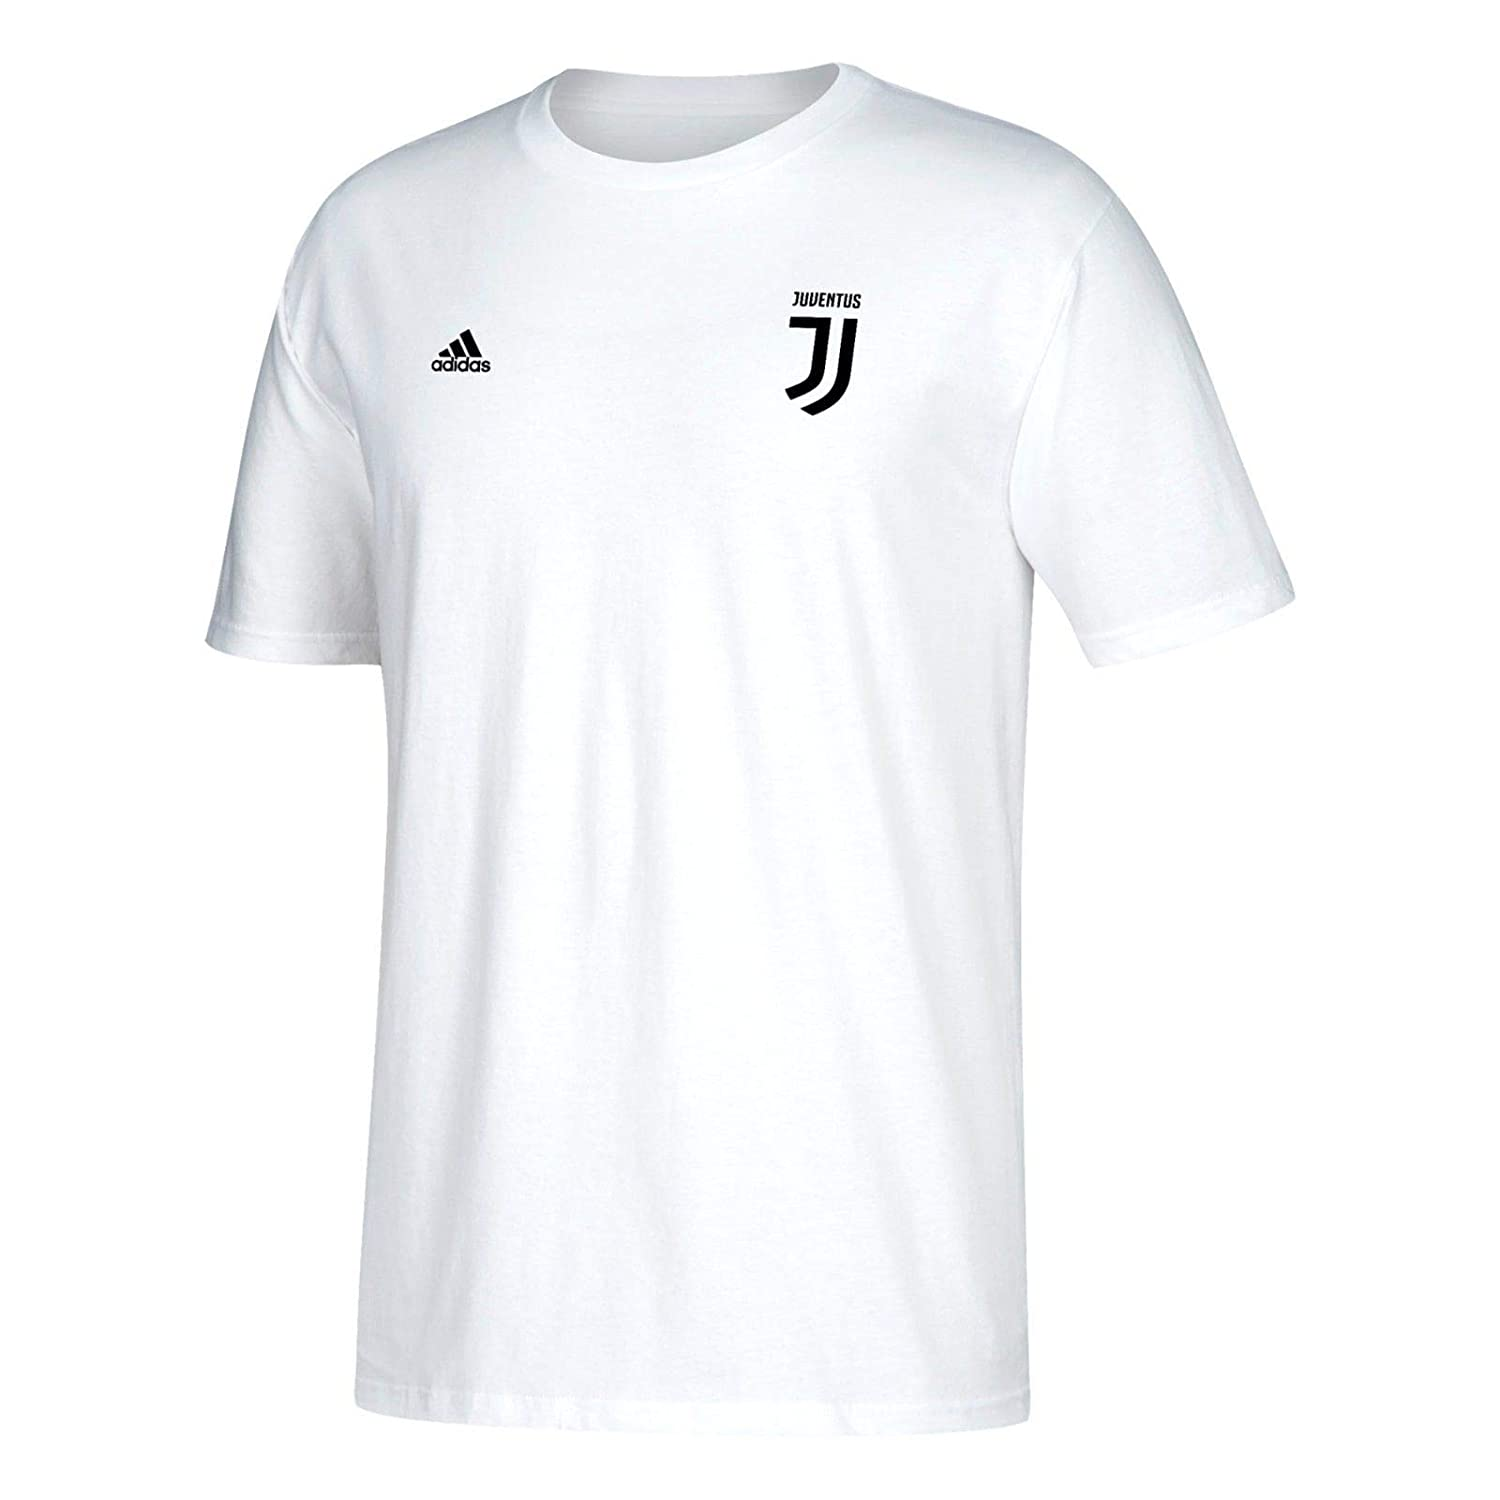 55785badb Amazon.com   adidas Cristiano Ronaldo Juventus Men s Player T-Shirt    Sports   Outdoors